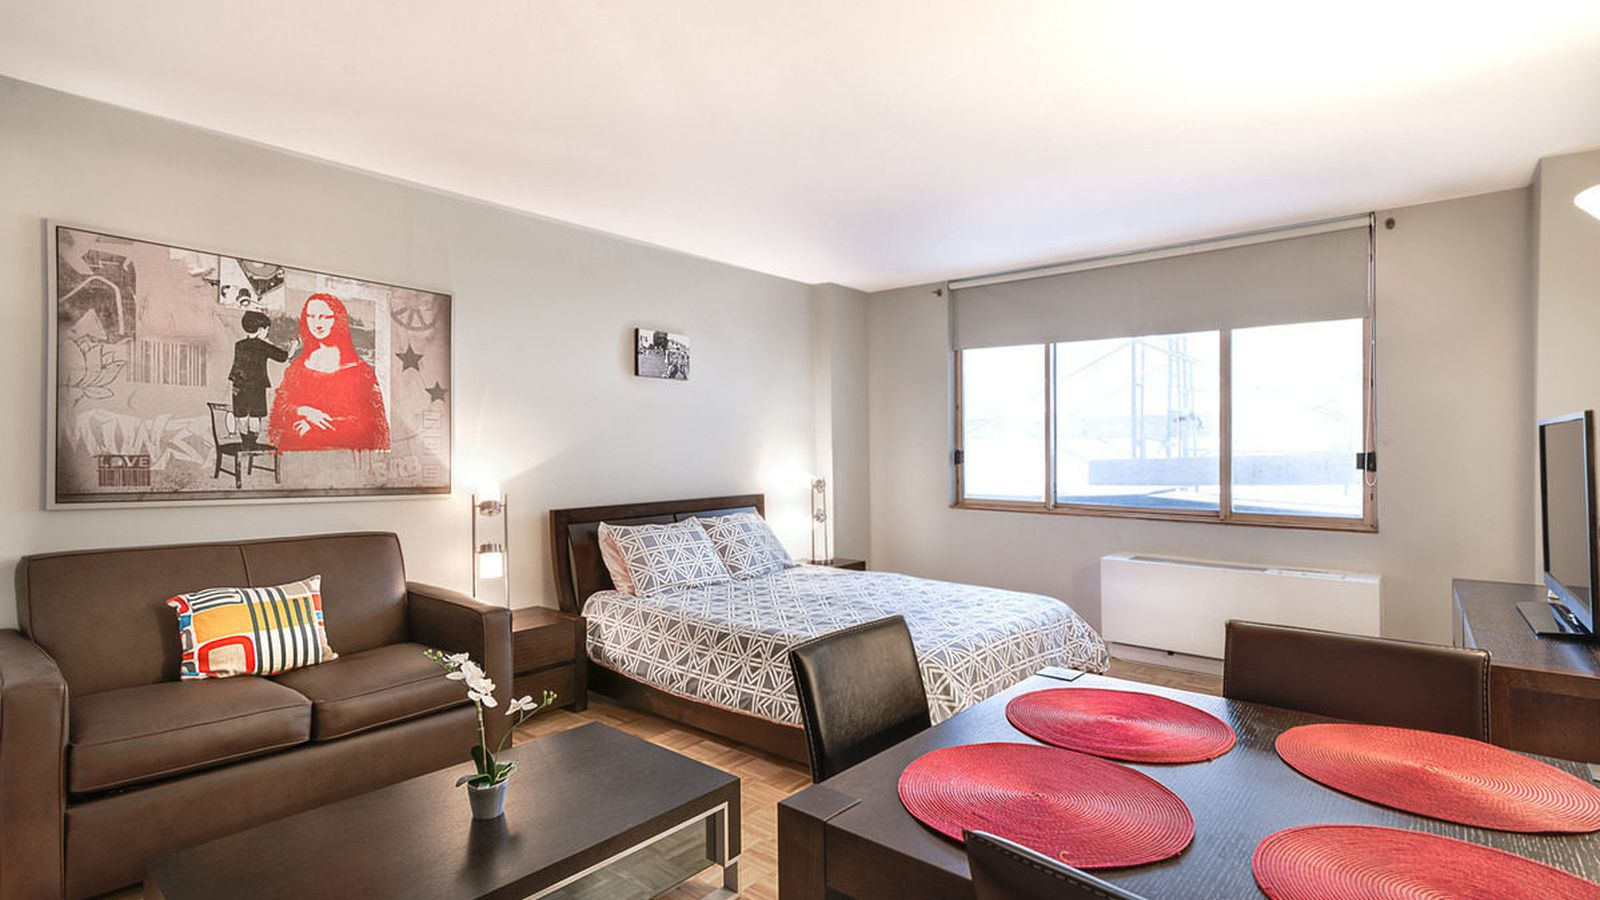 how much for a 400 square foot studio in midtown west curbed ny. Black Bedroom Furniture Sets. Home Design Ideas